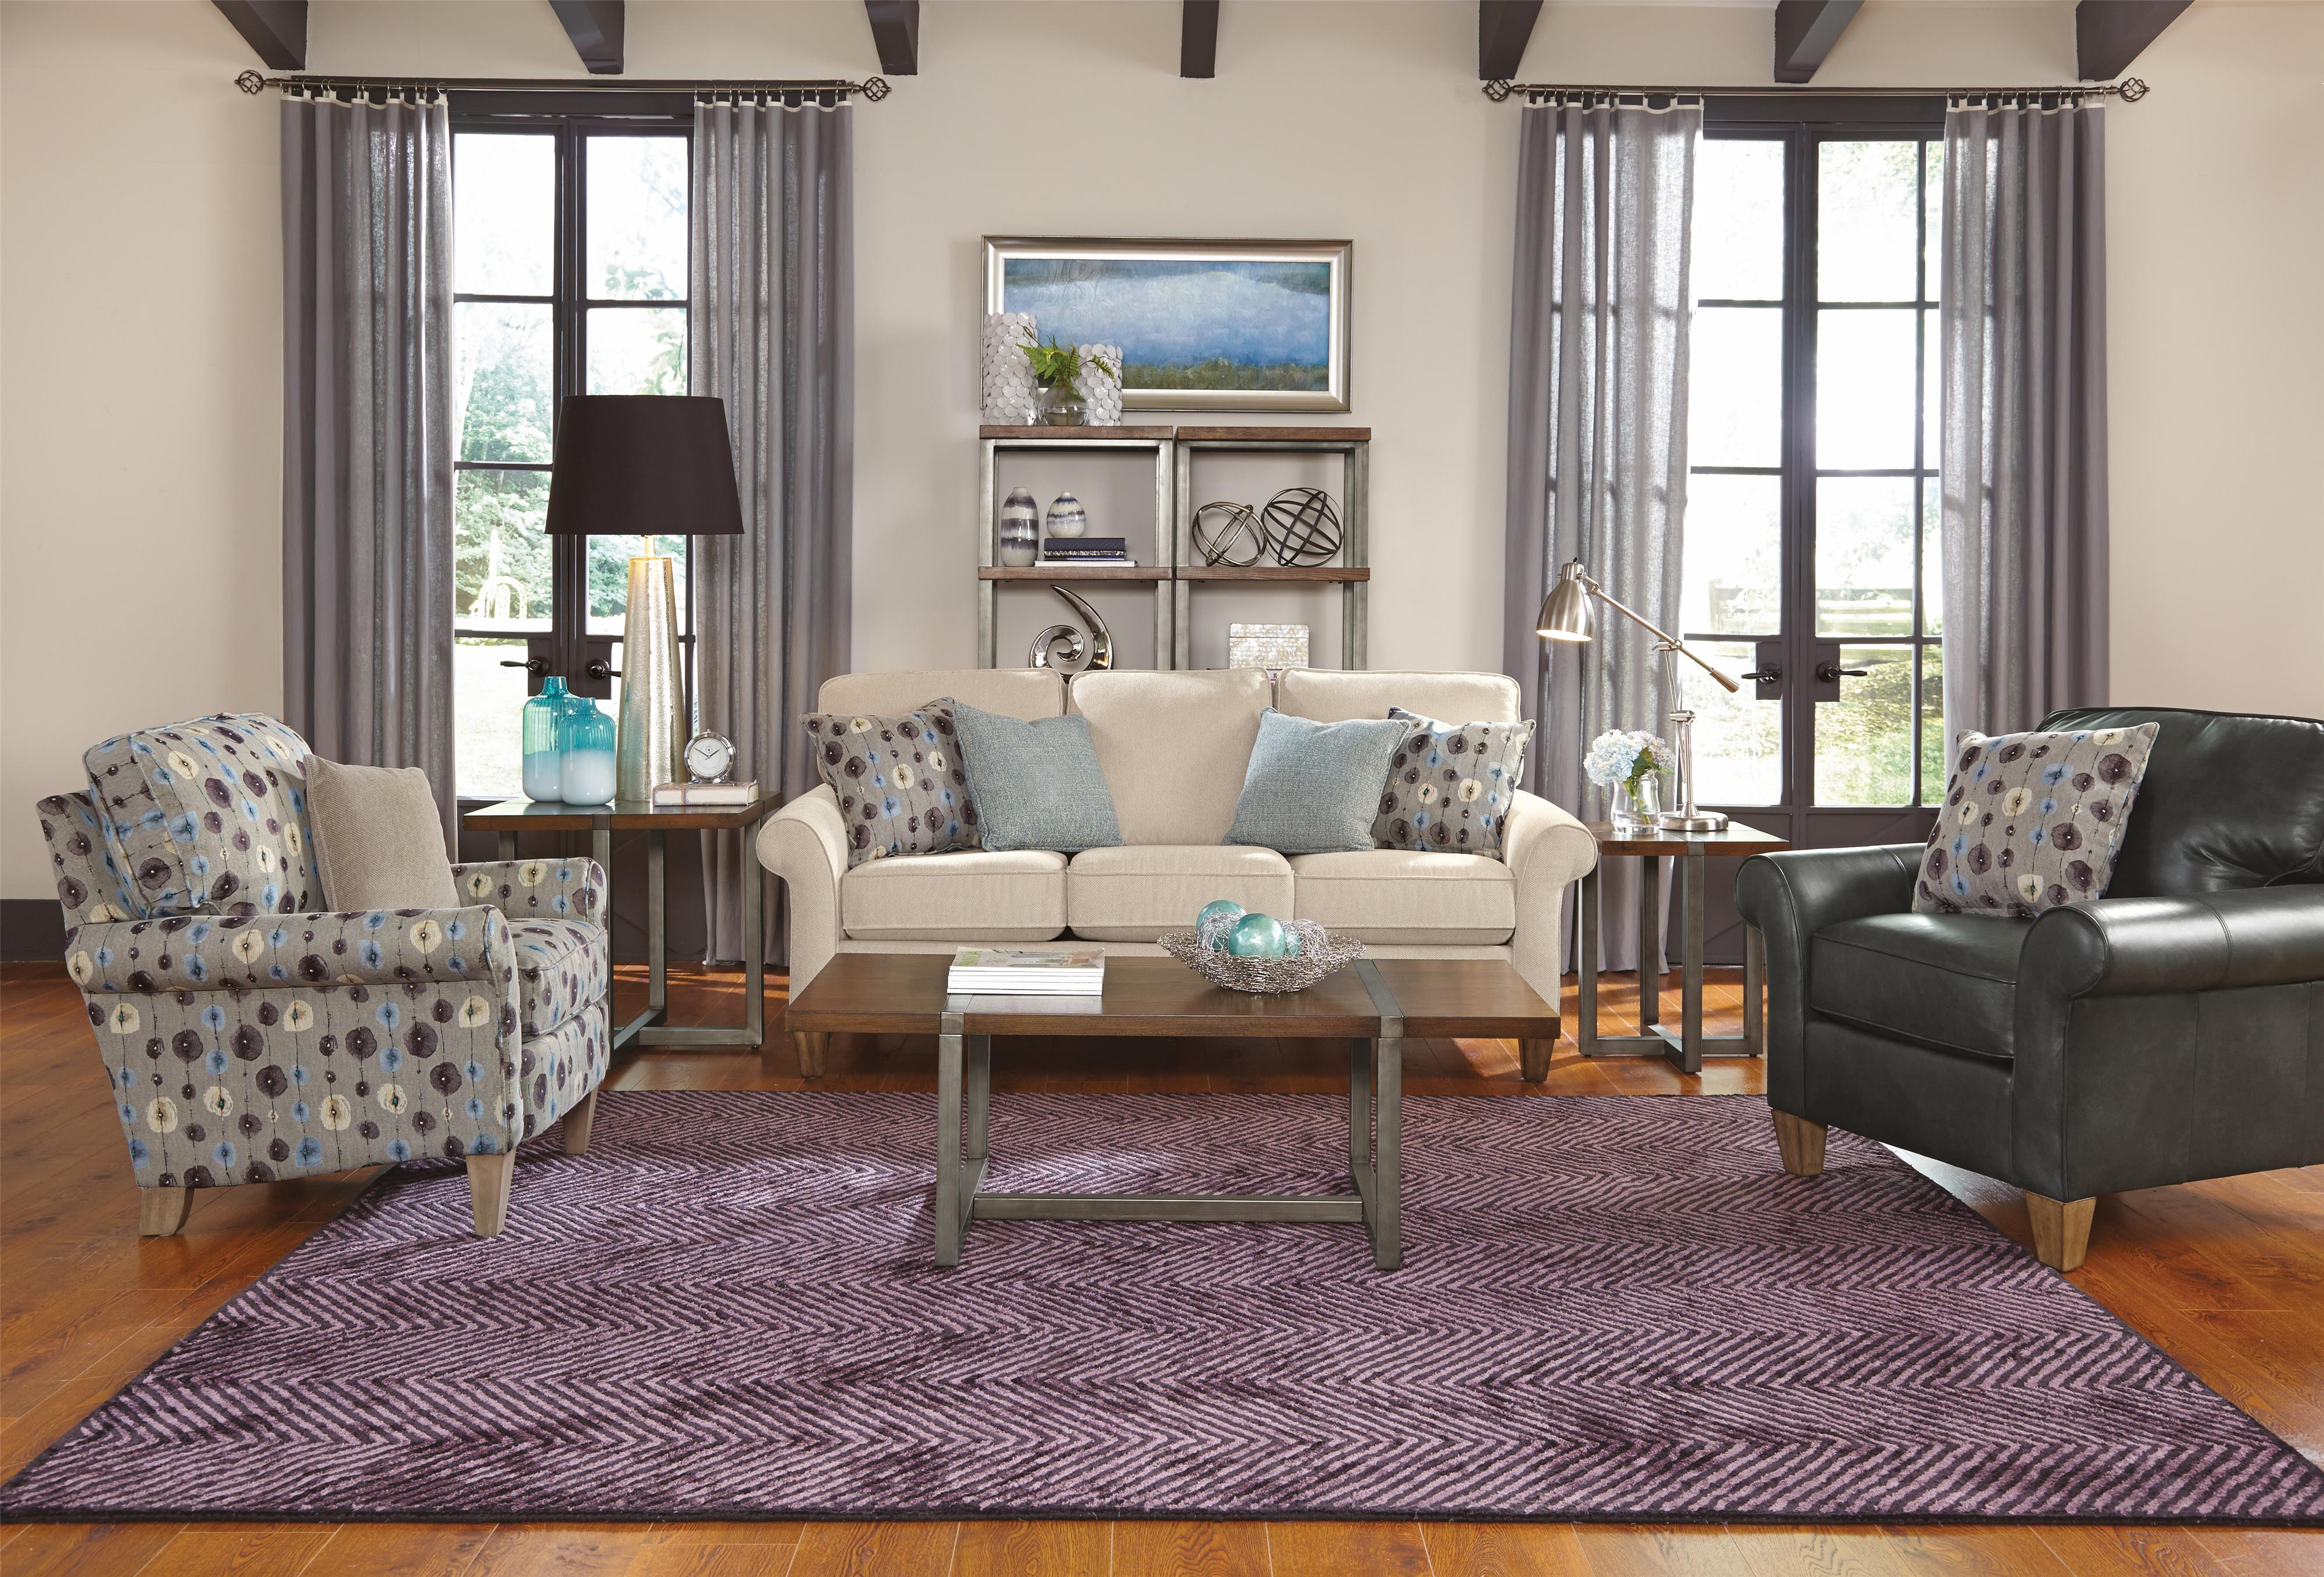 worcester sofas item and ashley by reclining providence cup down holders ma table boston addie with drop rotmans couches lms couch sofa design ri collections signature